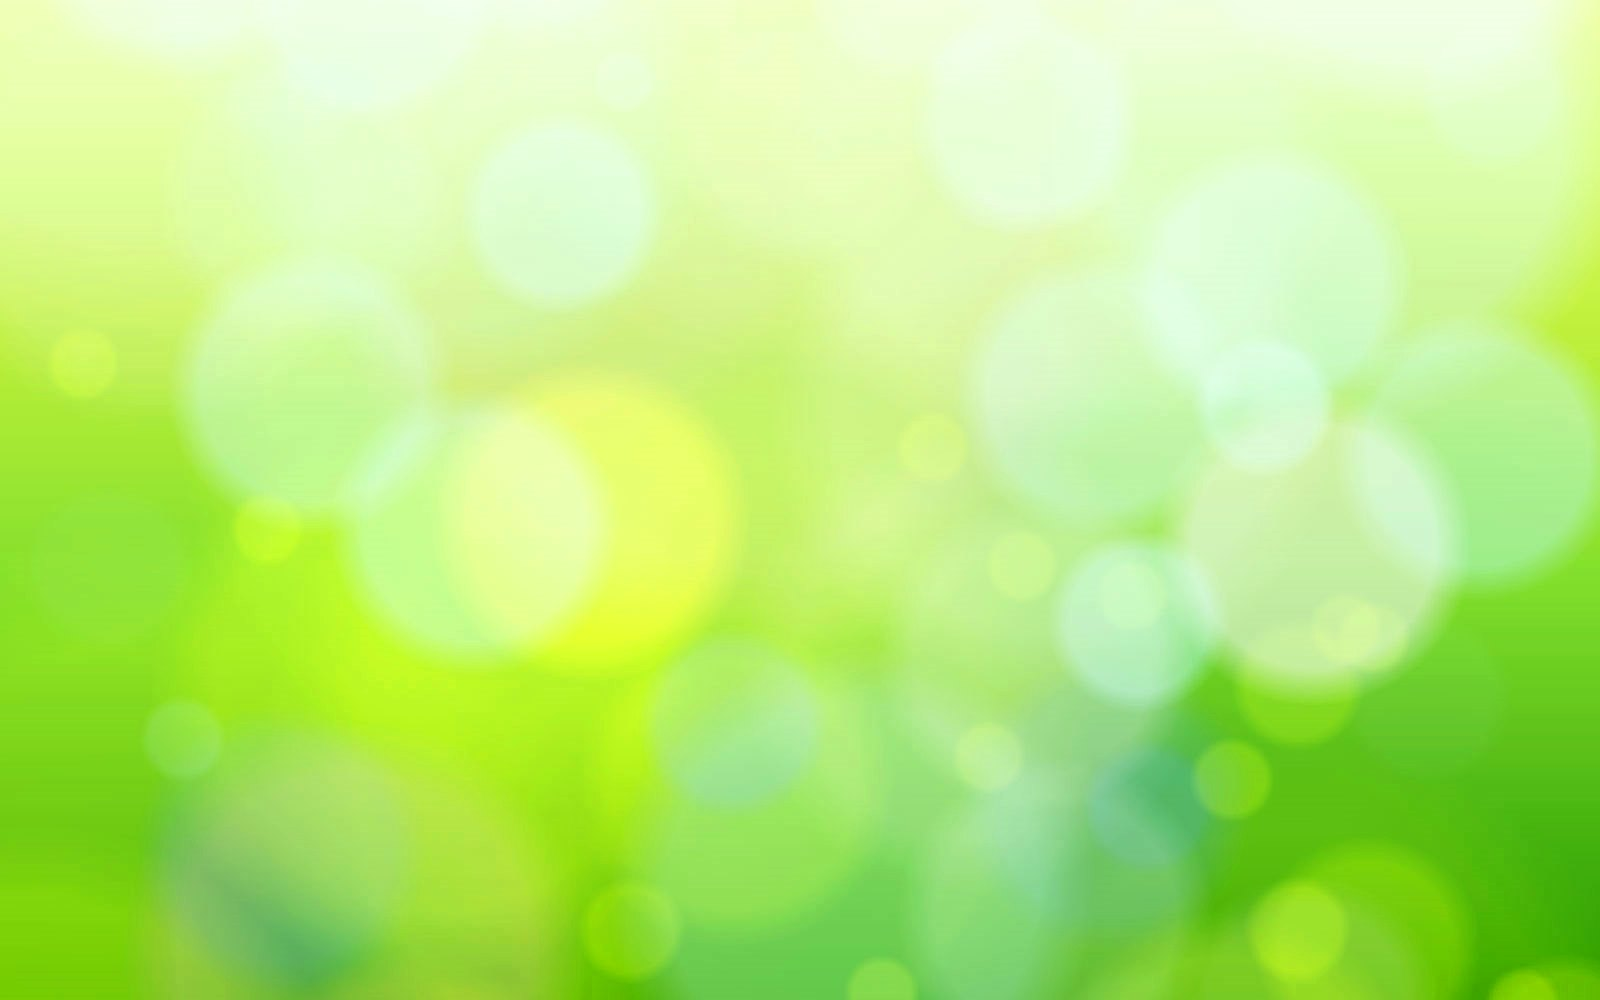 lightgreenabstract